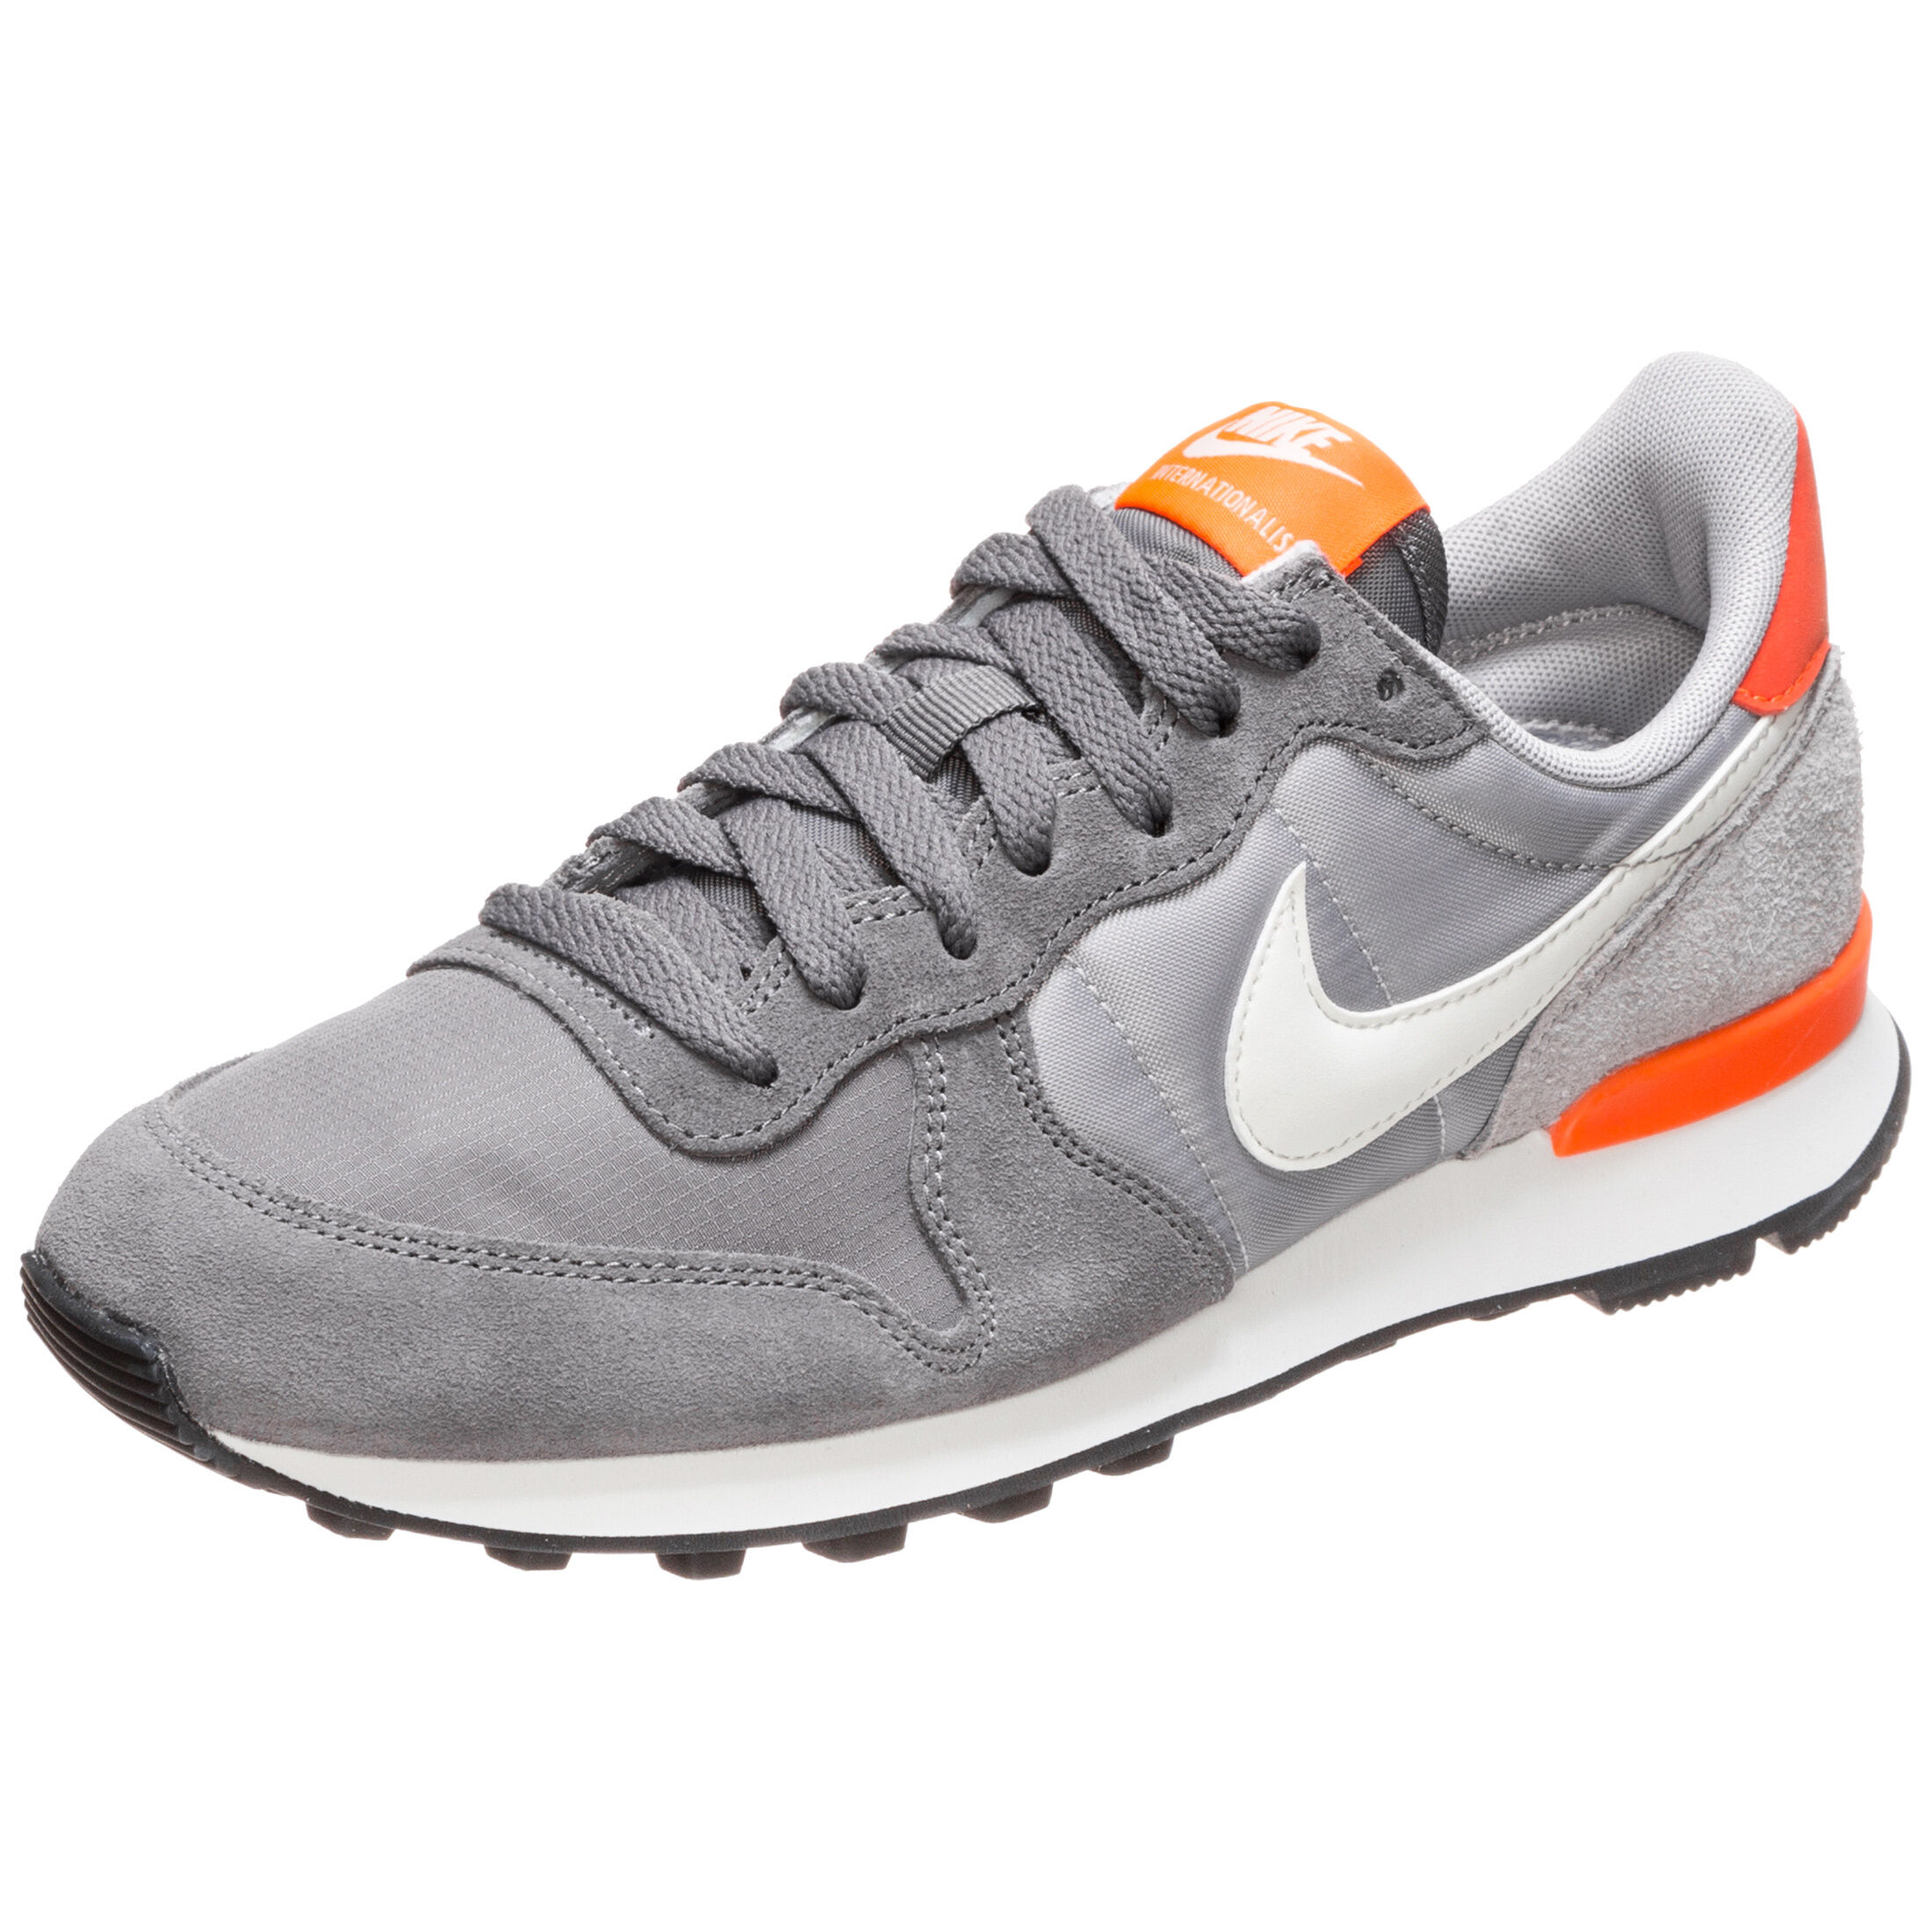 buy popular b12bd 1e909 new arrivals nike internationalist w schuhe iron white brown 28bcf b4027   canada internationalist sneaker damen grau weiß zoom bei outfitter online  db706 ...